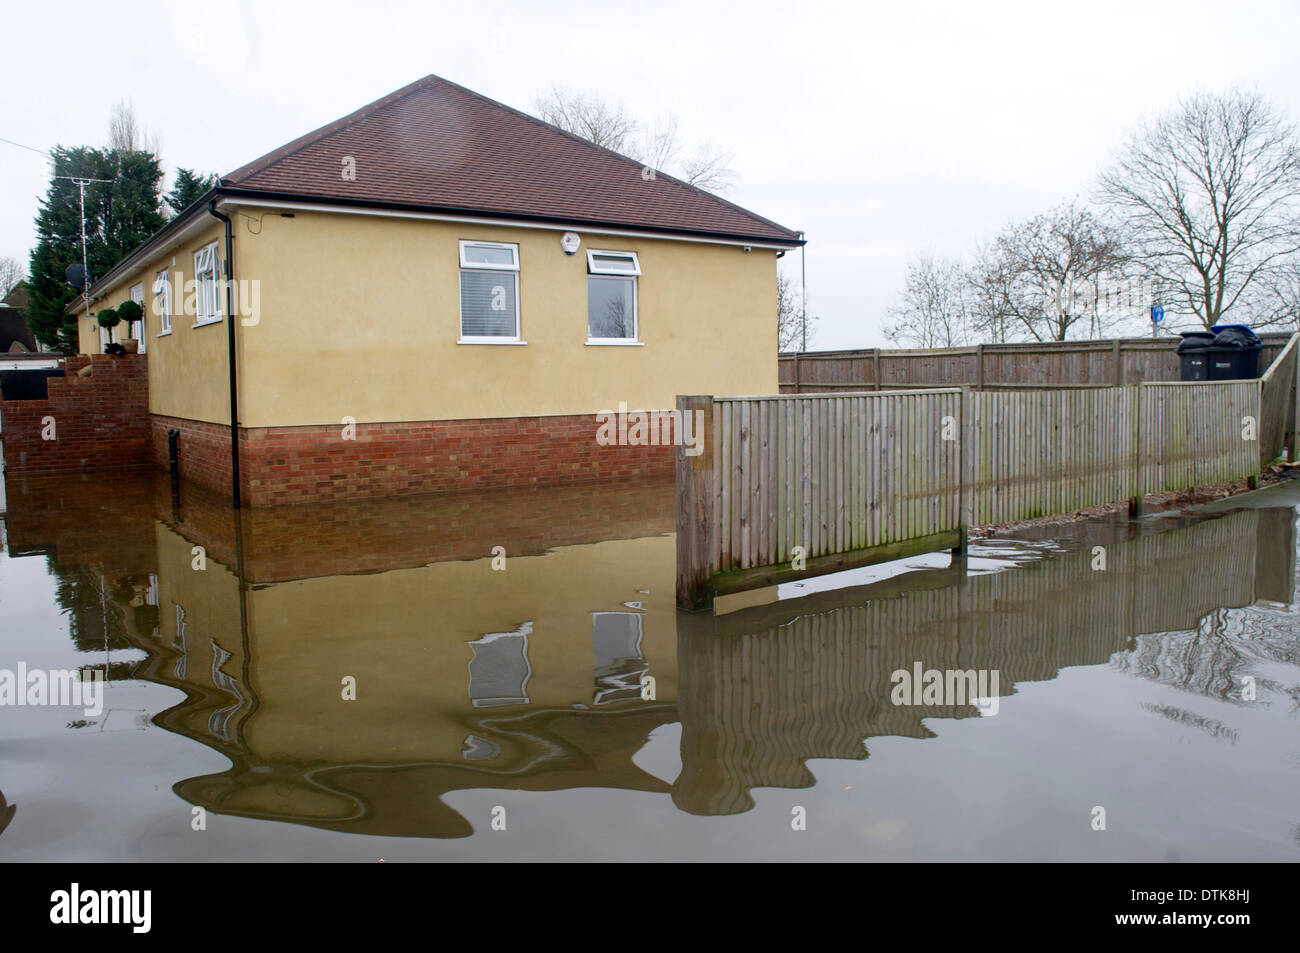 Flooded residential area and park in Staines. Driveway and streets flooded. - Stock Image